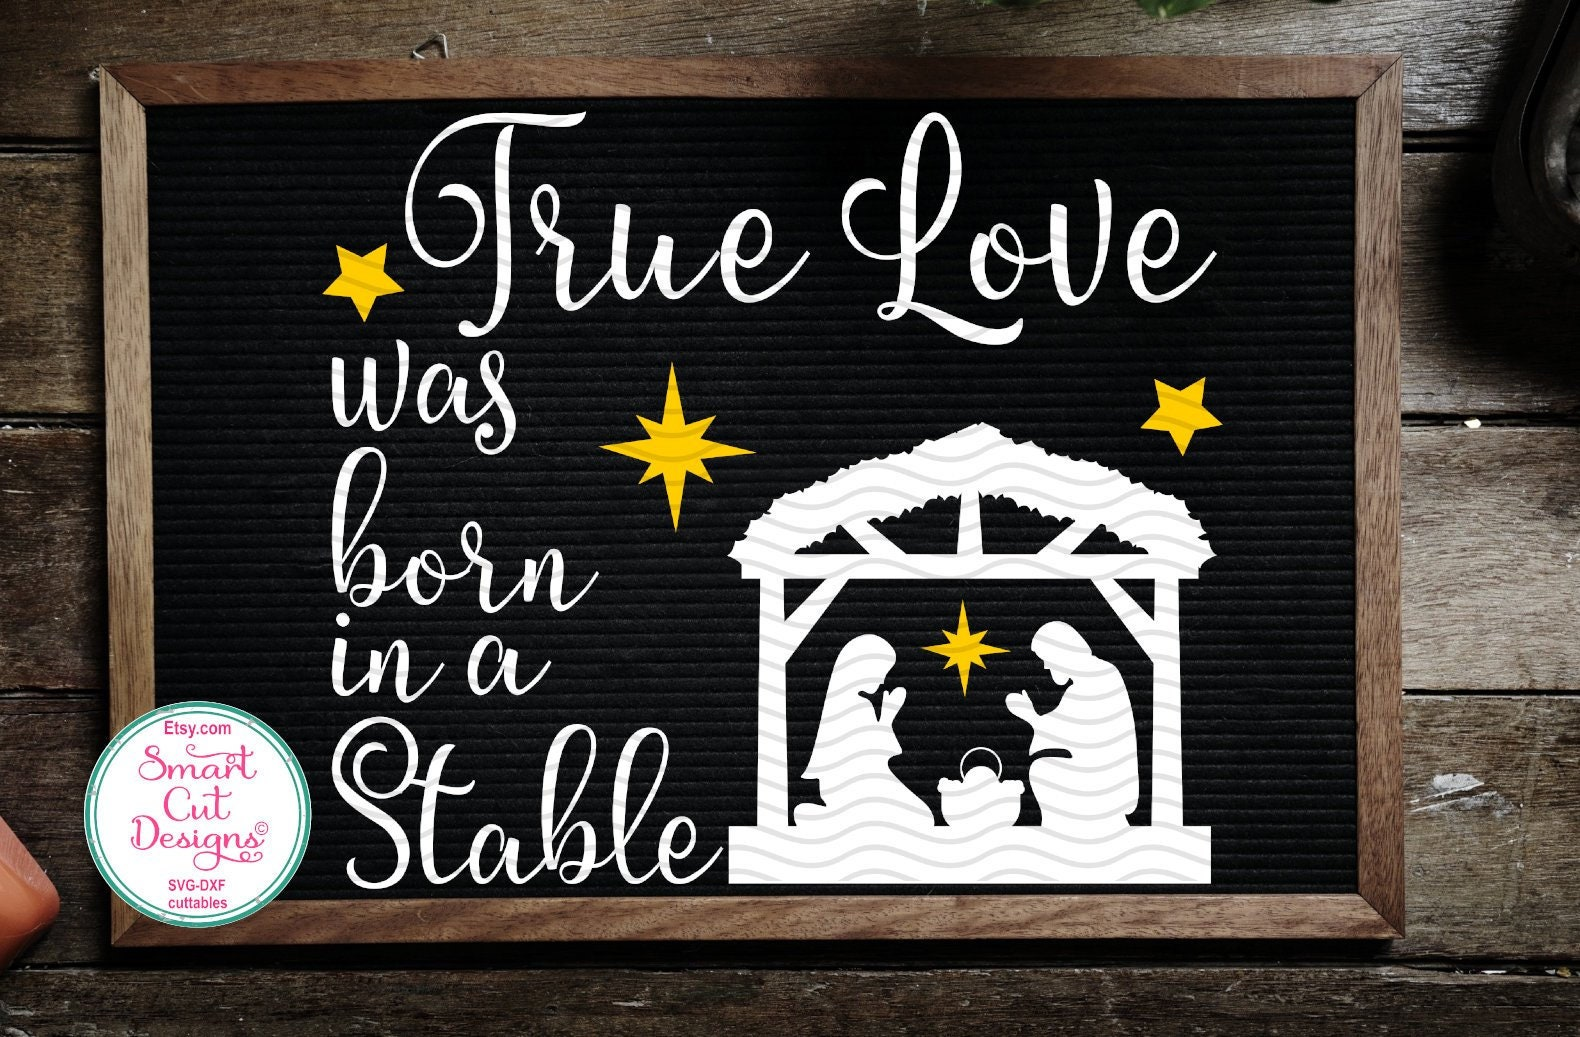 True Love Was Born In A Stable Nativity Scene Svg Religious Svg Jessus  Christmas Svg Files For Cricut And Cameo Wooden Sign Svg Bible Verses